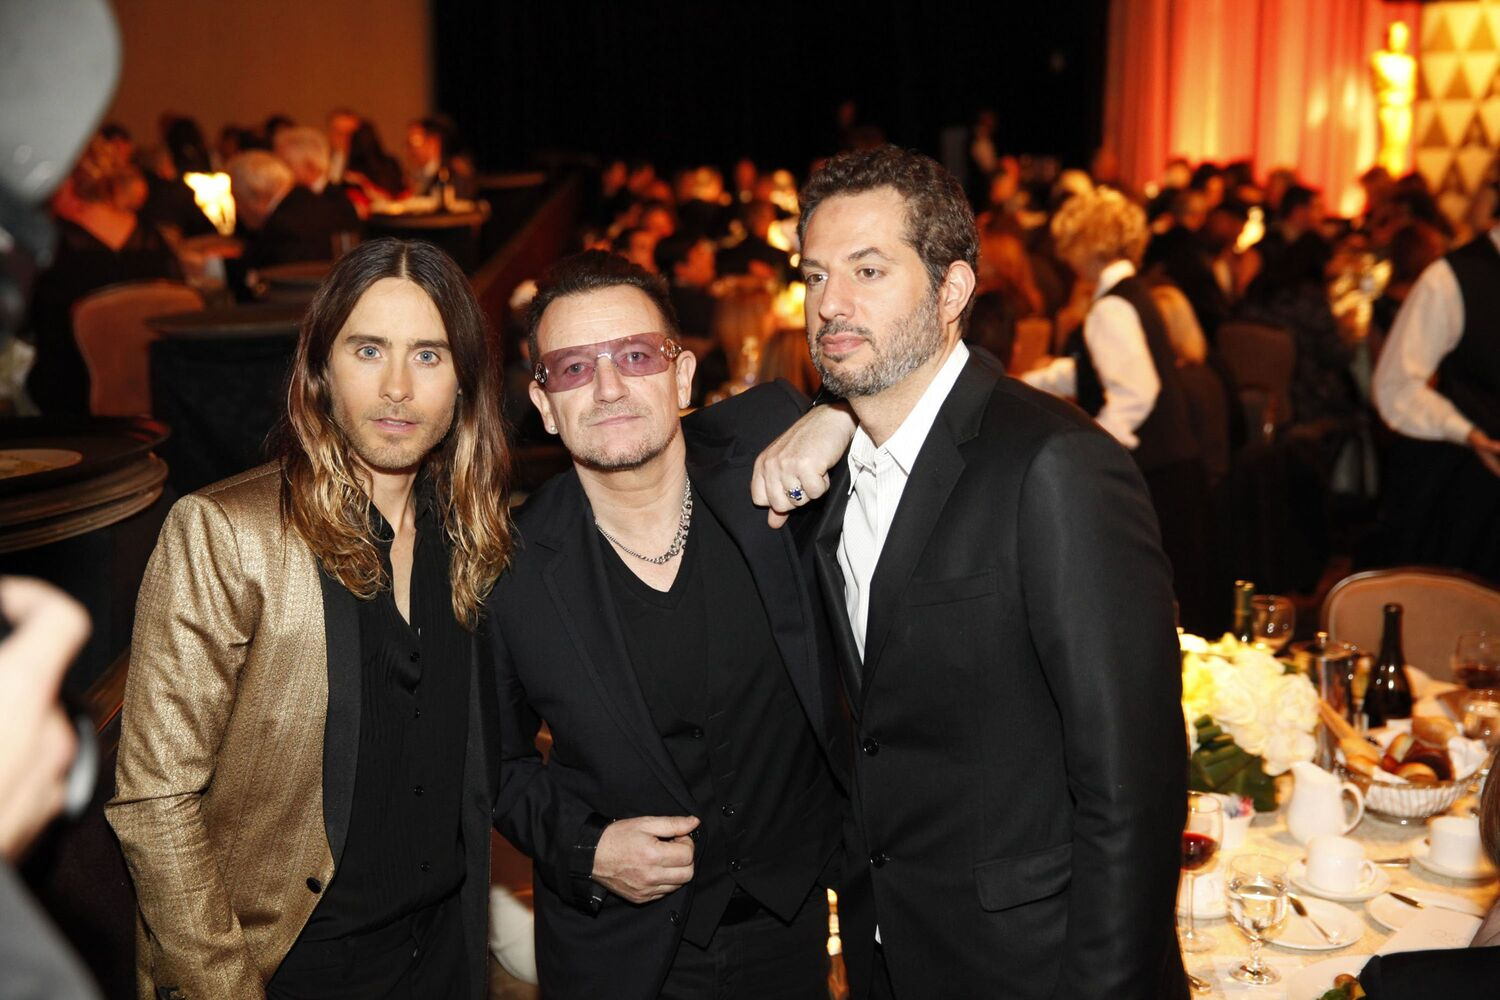 Jared Leto and Bono are nominated for Best Supporting Actor and Best Original Song, respectively.